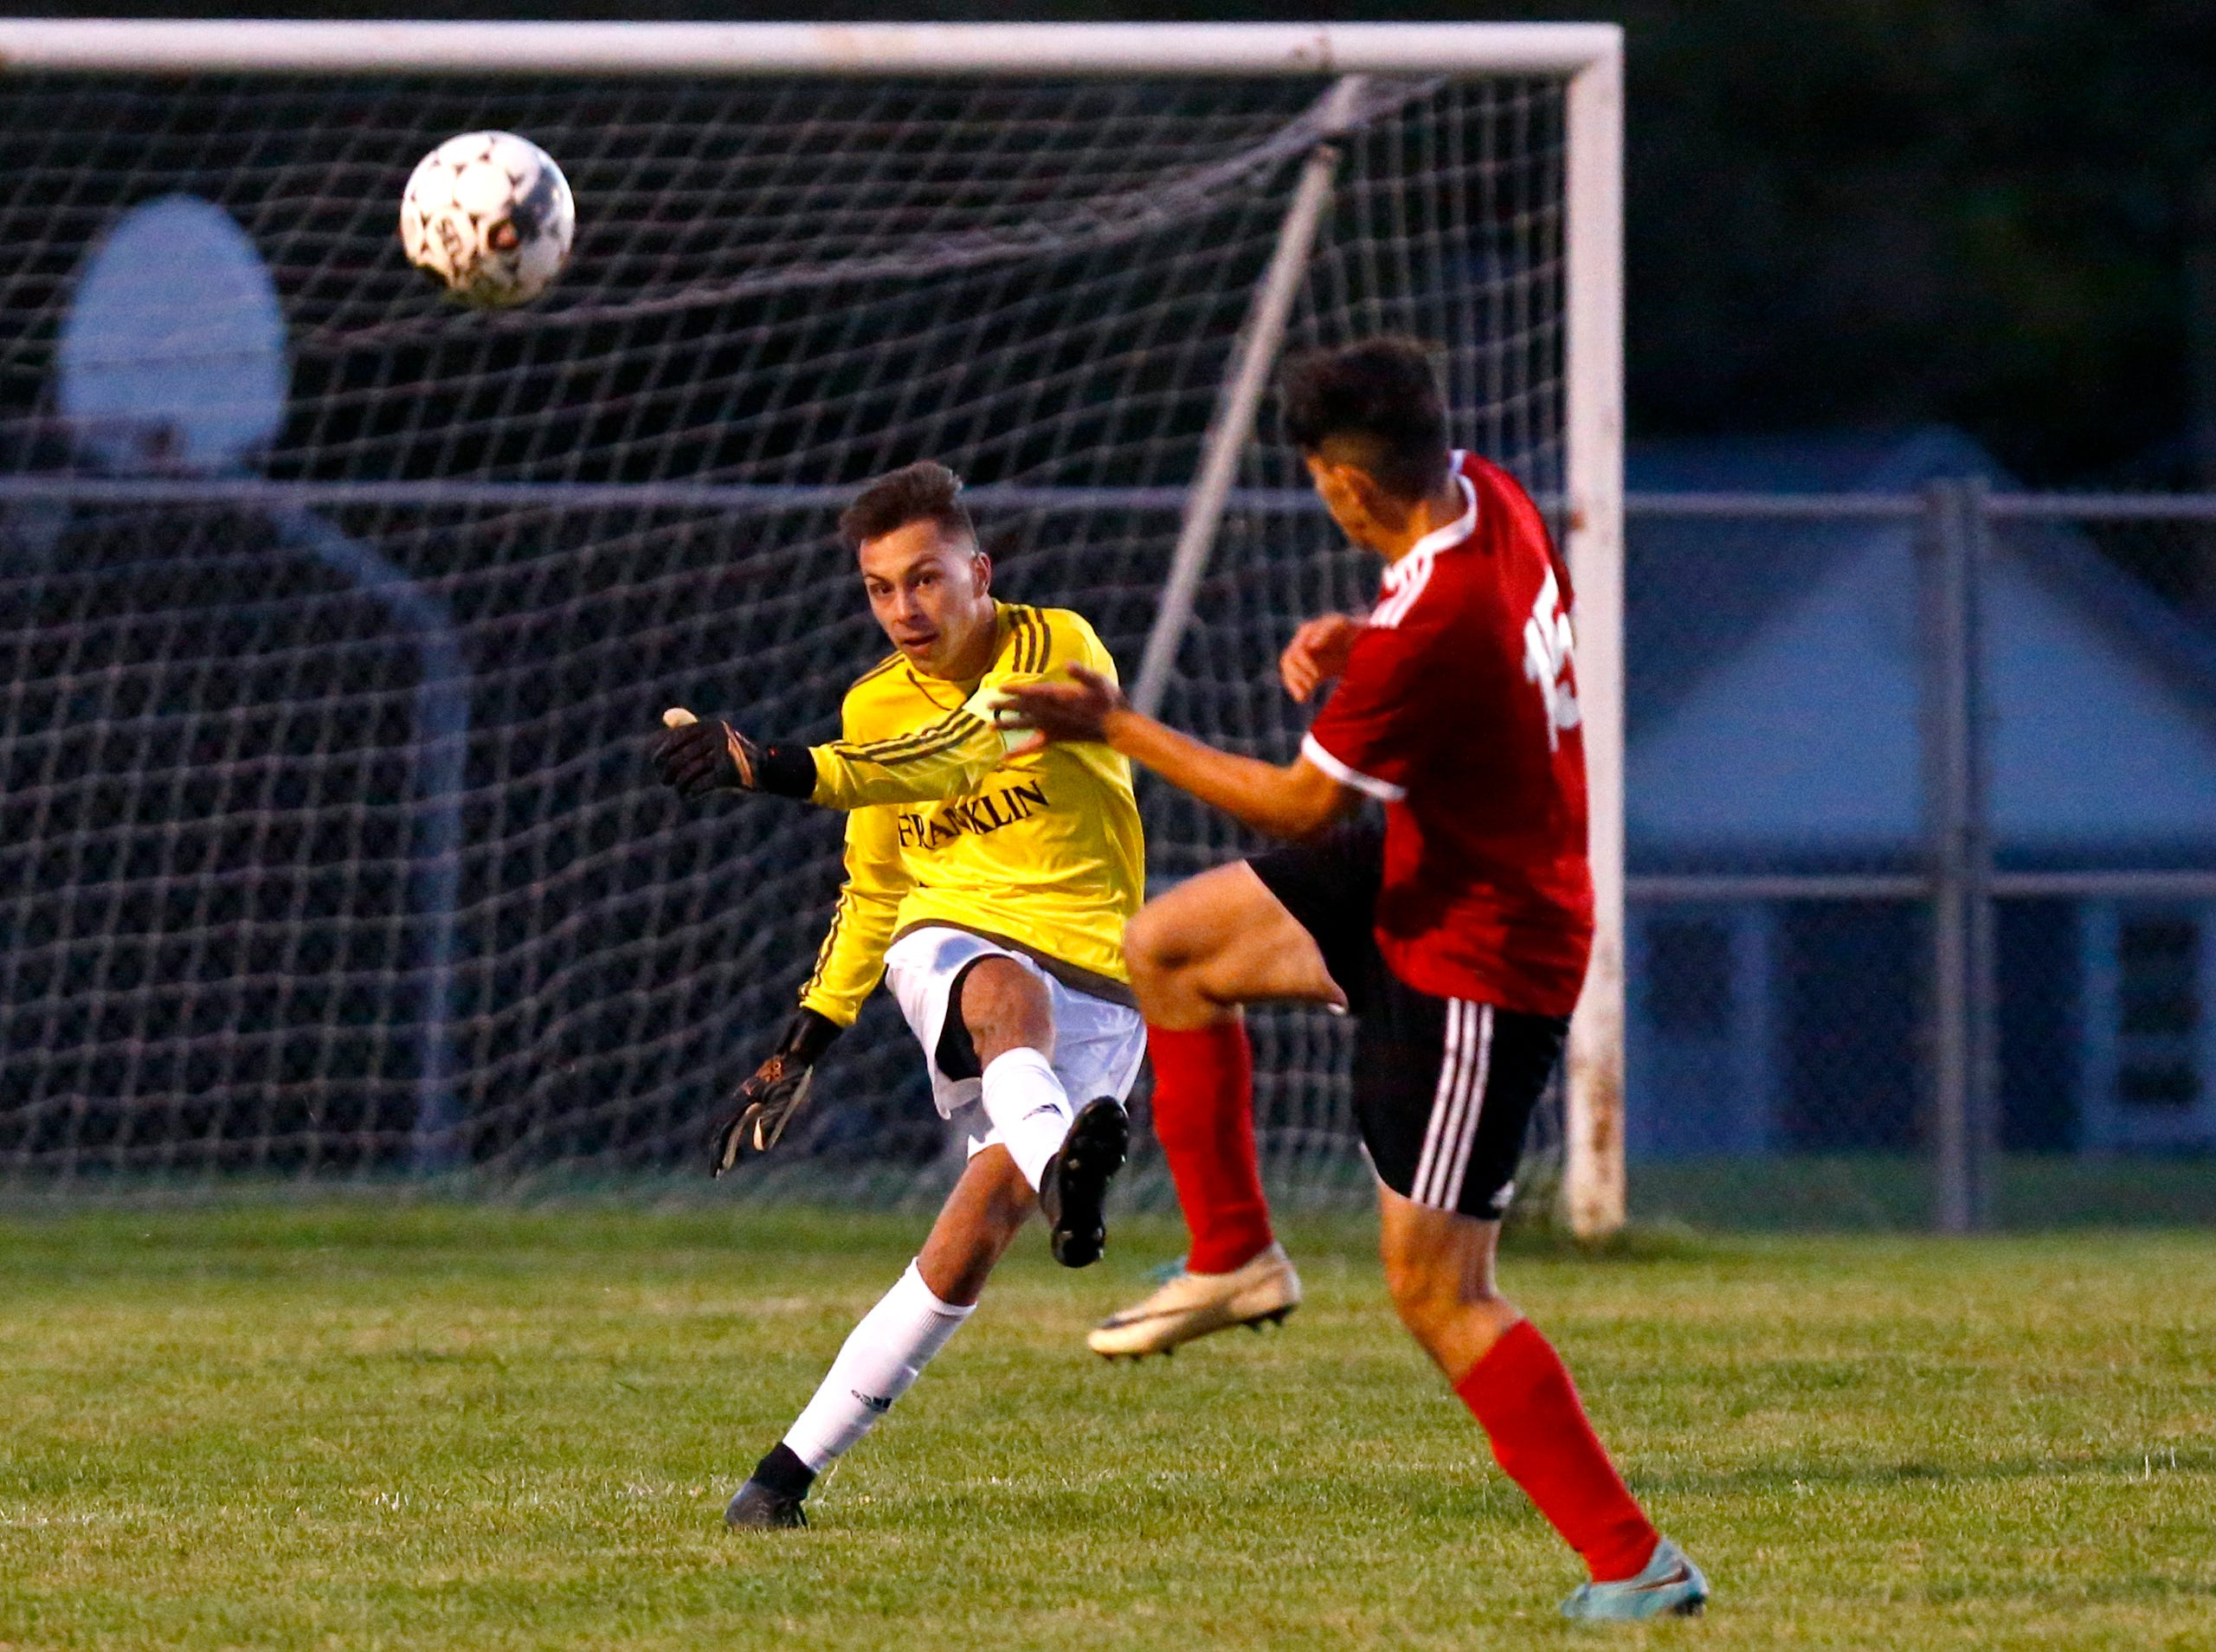 Franklin's Joe Heup sends the ball away from South Milwaukee's Watheq Al Maadheedi at South Milwaukee on Oct. 4.